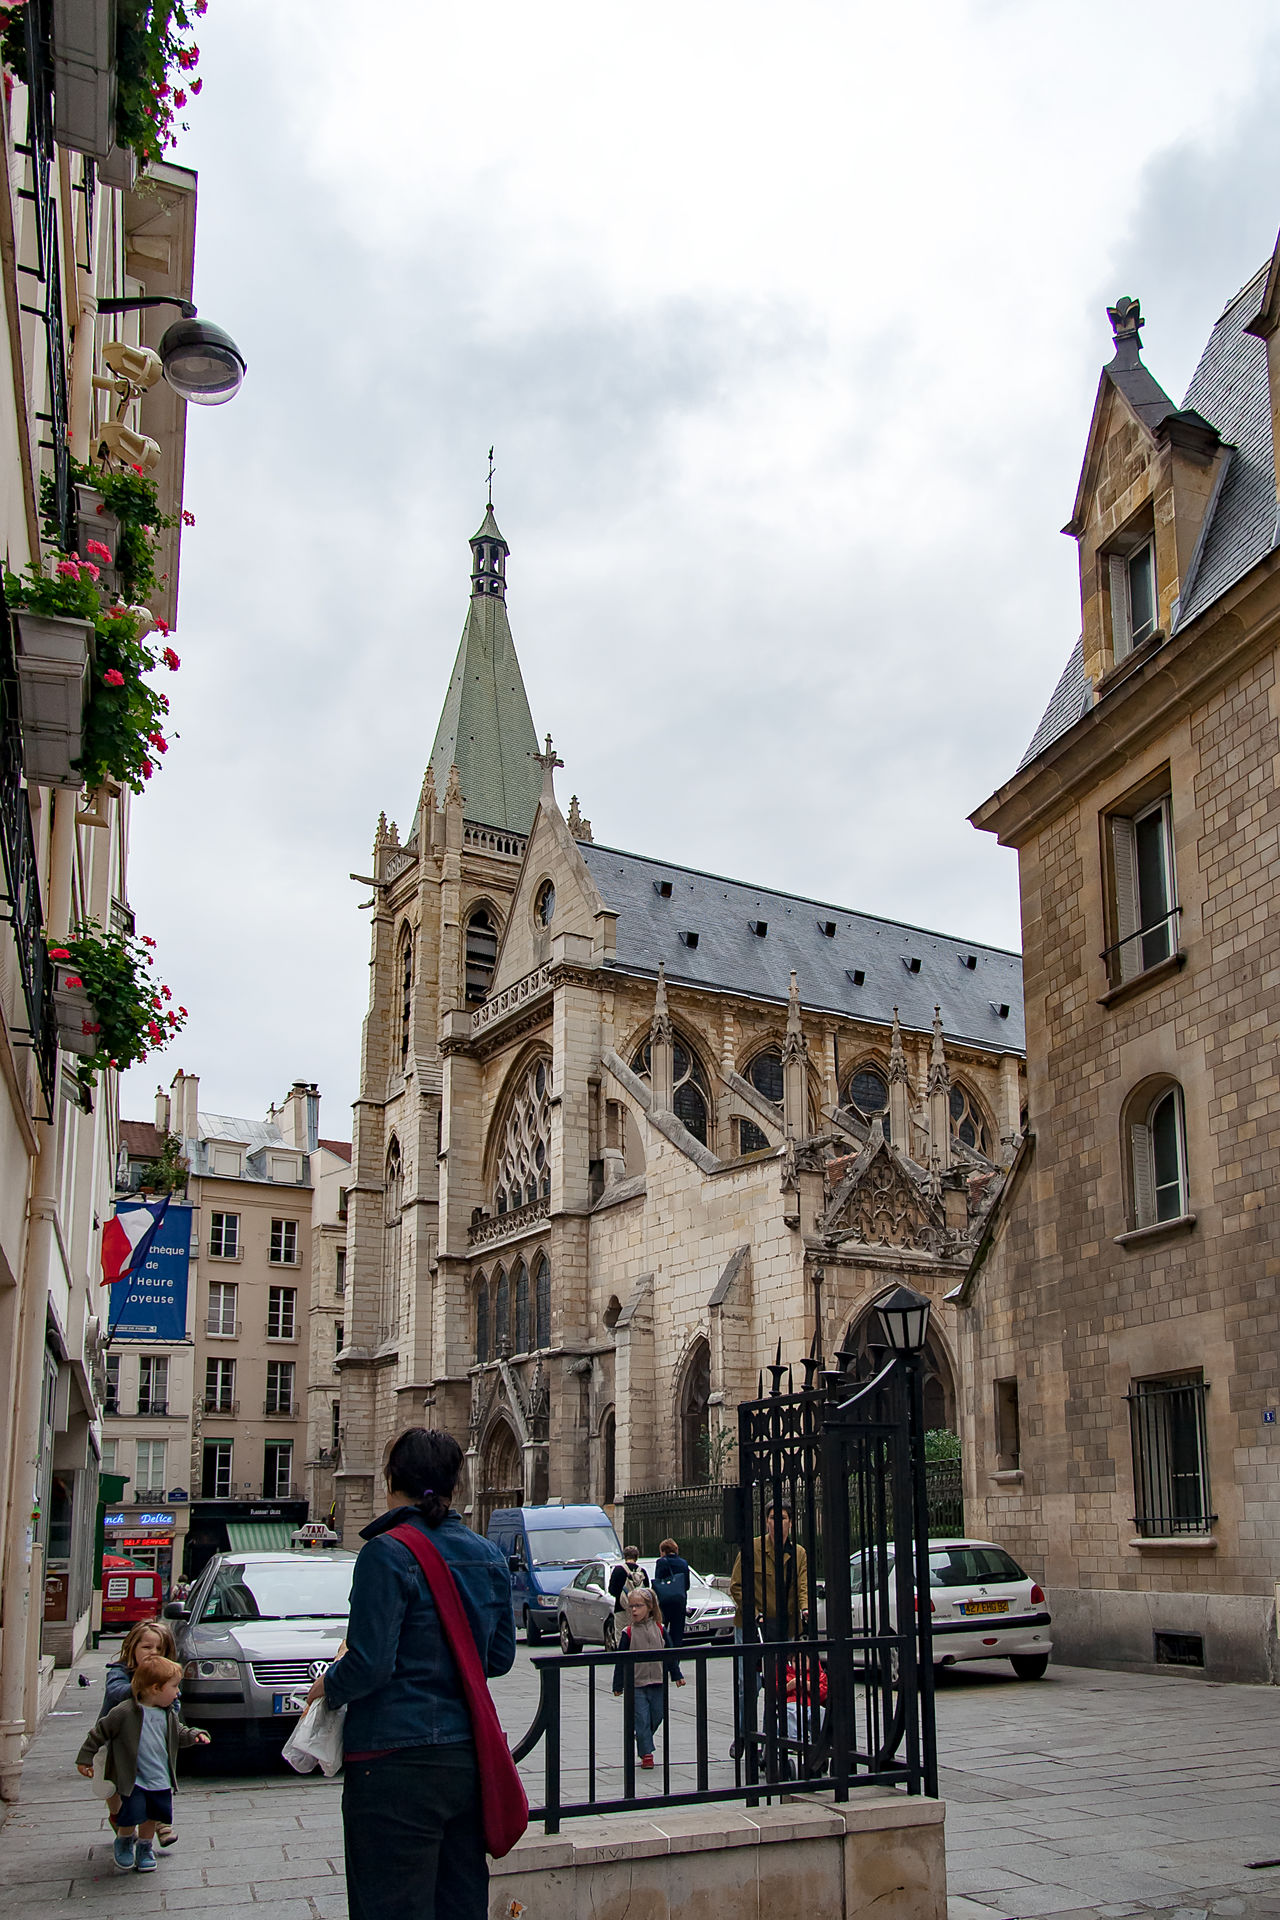 Paris, France, circa april 2016: 2016: Strolling and sightseeing in Paris Adult Adults Only Architecture Building Exterior Built Structure City City Break City Life Clock Tower Cloud - Sky Day Façade Large Group Of People Old Town Outdoors People Place Of Worship Religion Sky Town Square Travel Destinations Tree